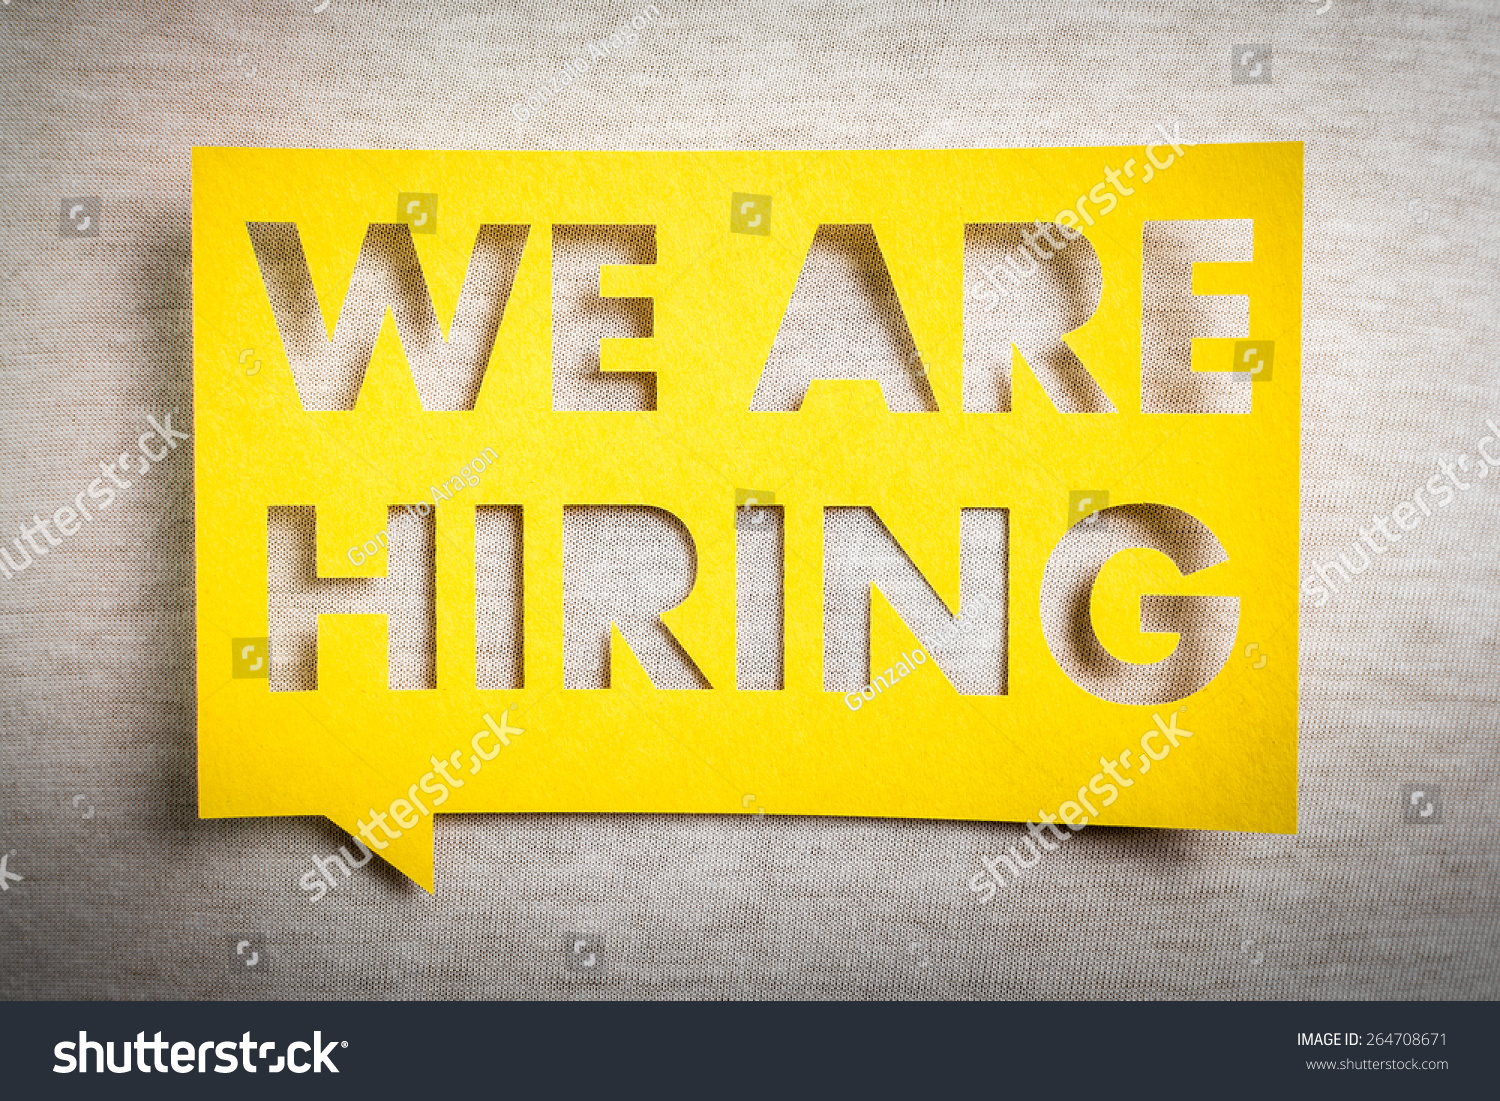 we hiring yellow banner on white stock photo shutterstock we are hiring yellow banner on white texture background job board design